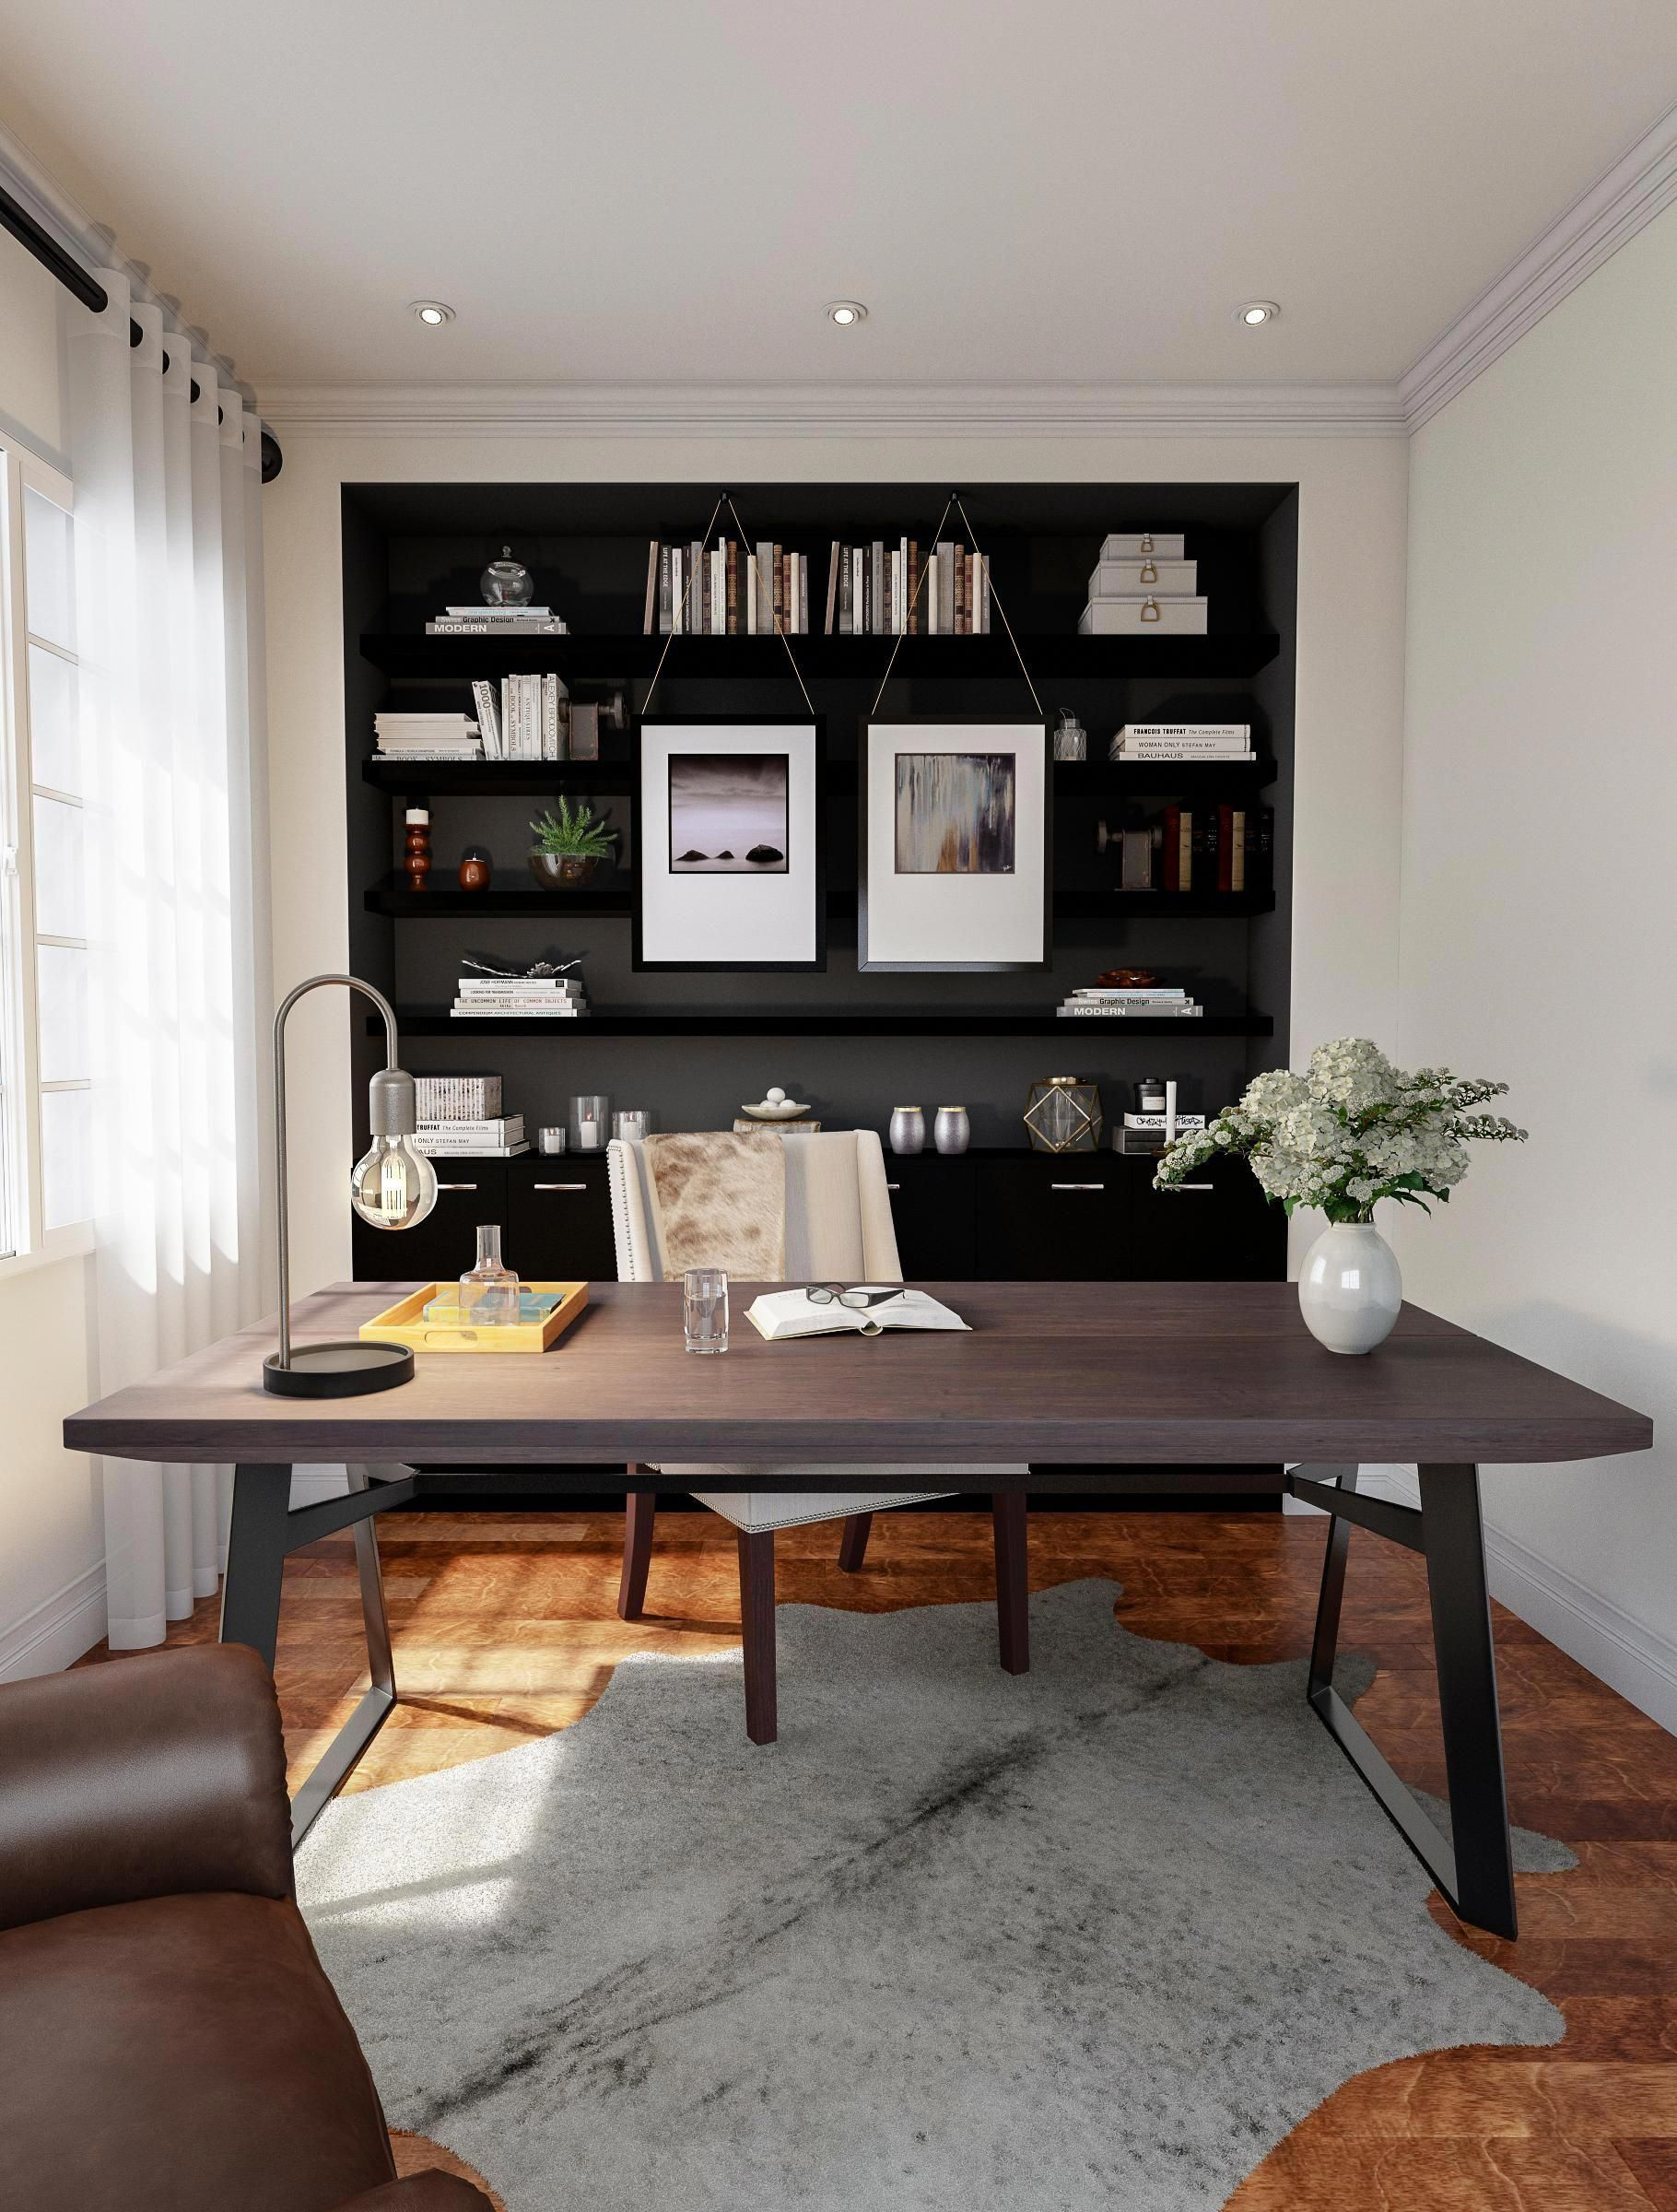 Creative Office Design Home And Decor Ideas For Decorating My Office 20190711 Home Office Decor Modern Home Office Home Office Furniture